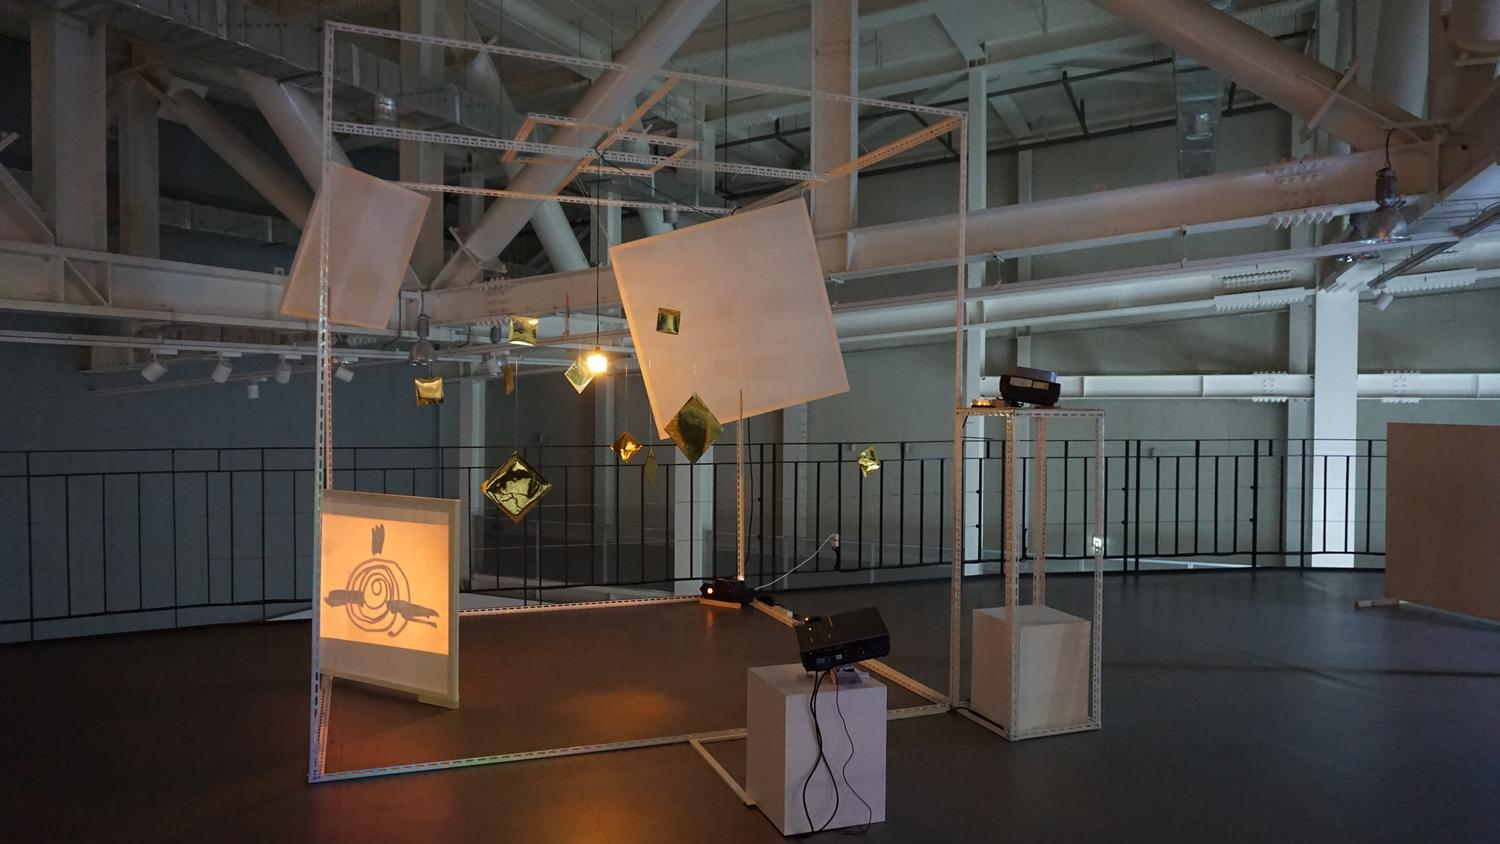 An installation with two projectors on plinths, several hanging lights and screens, within a outlined cube of a room.